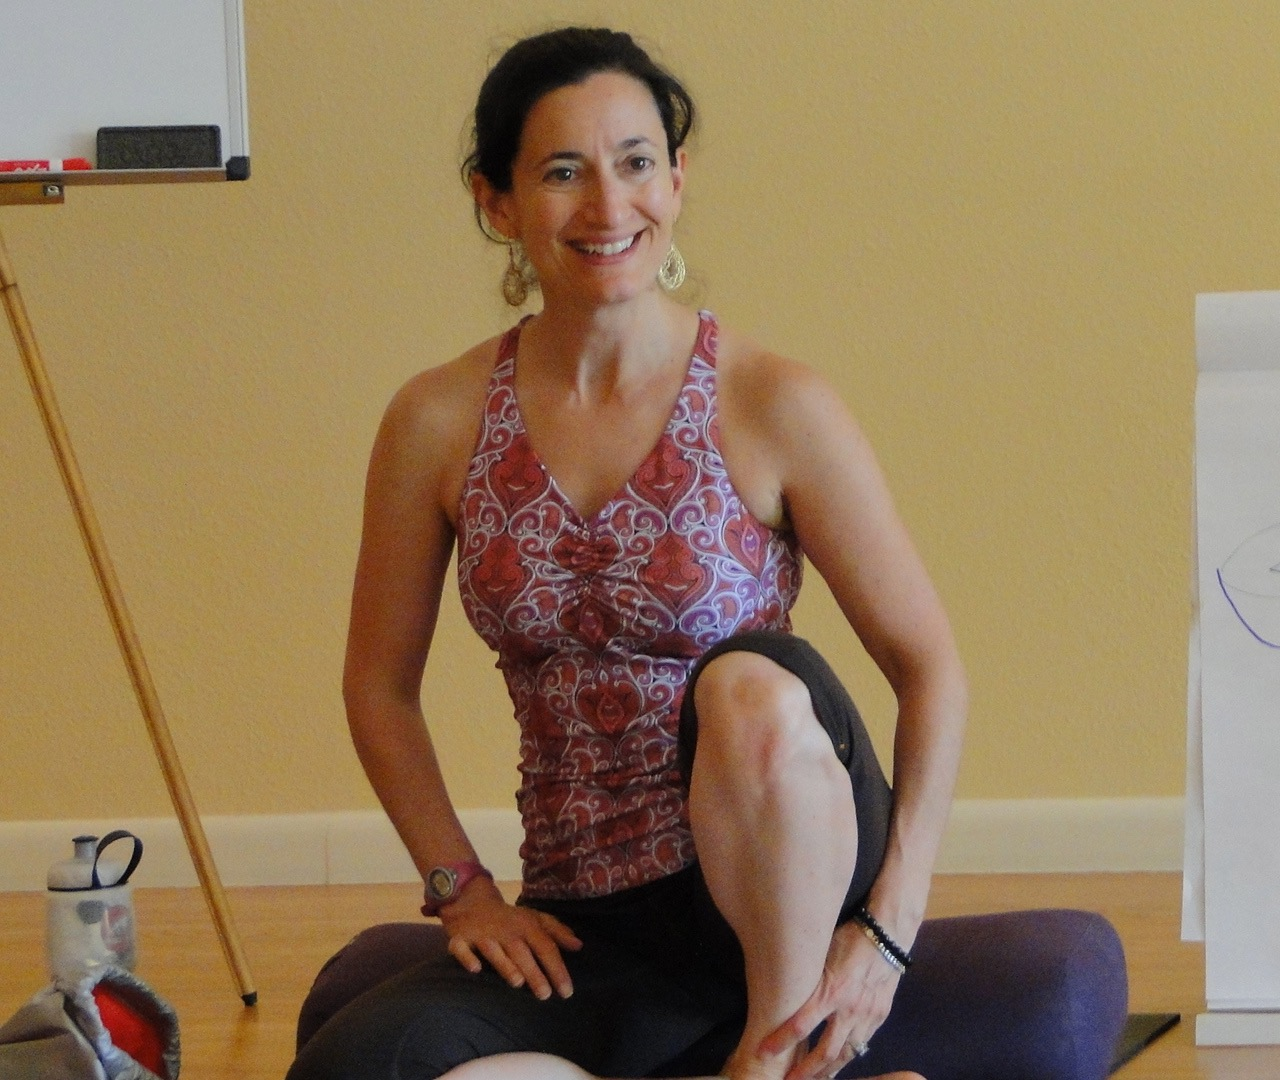 Laura Kupperman, Full Lotus creator, Career & Business Coach, Yoga Therapist